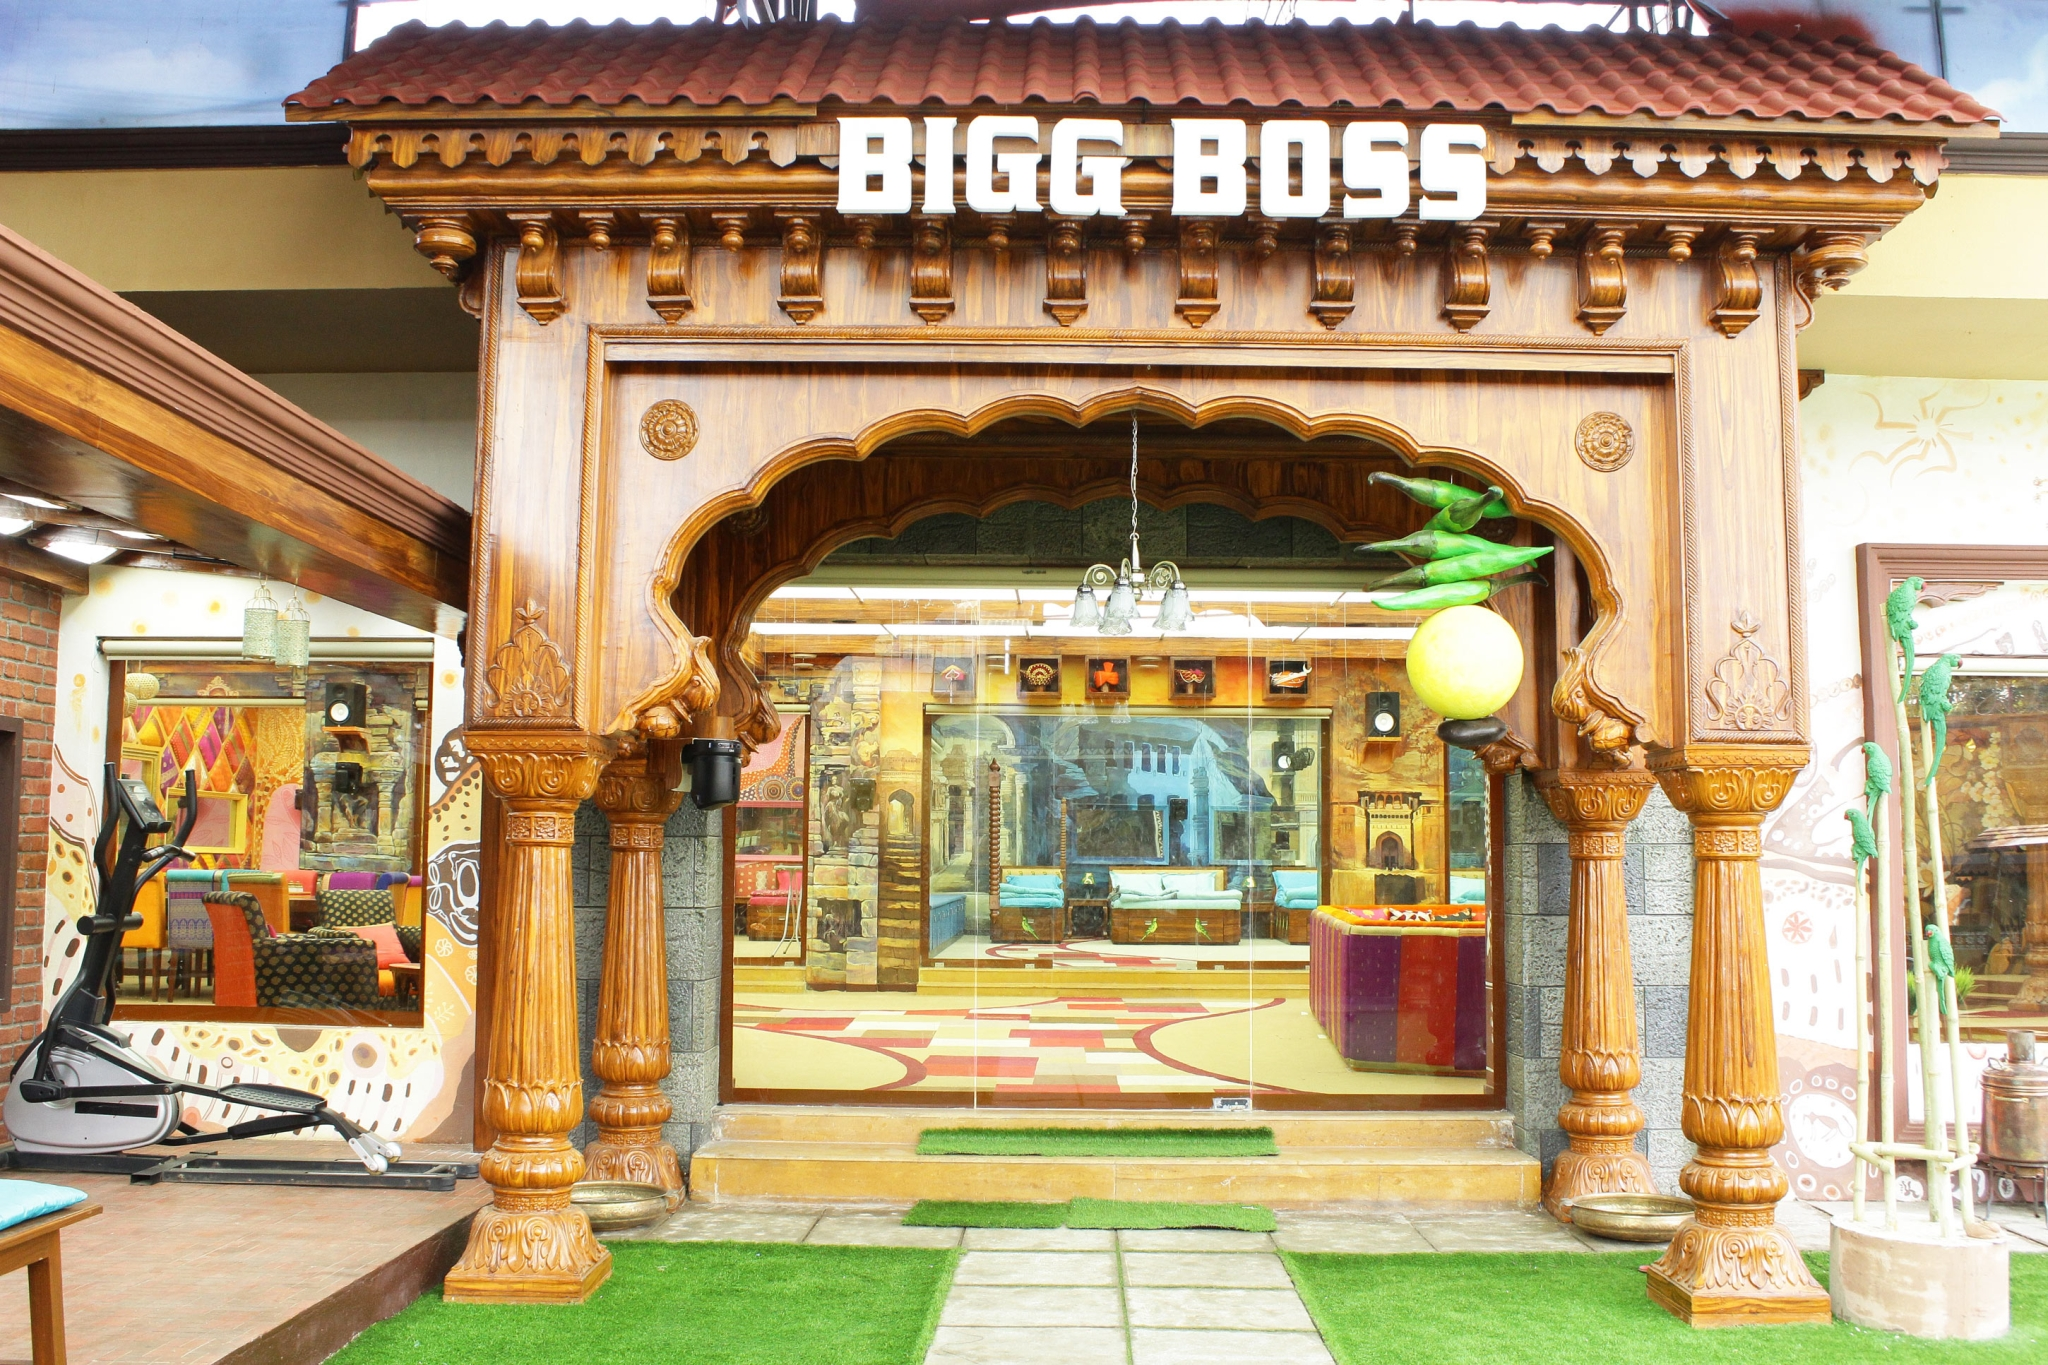 For Bigg Boss, our ad slots are sold at 3X the normal price